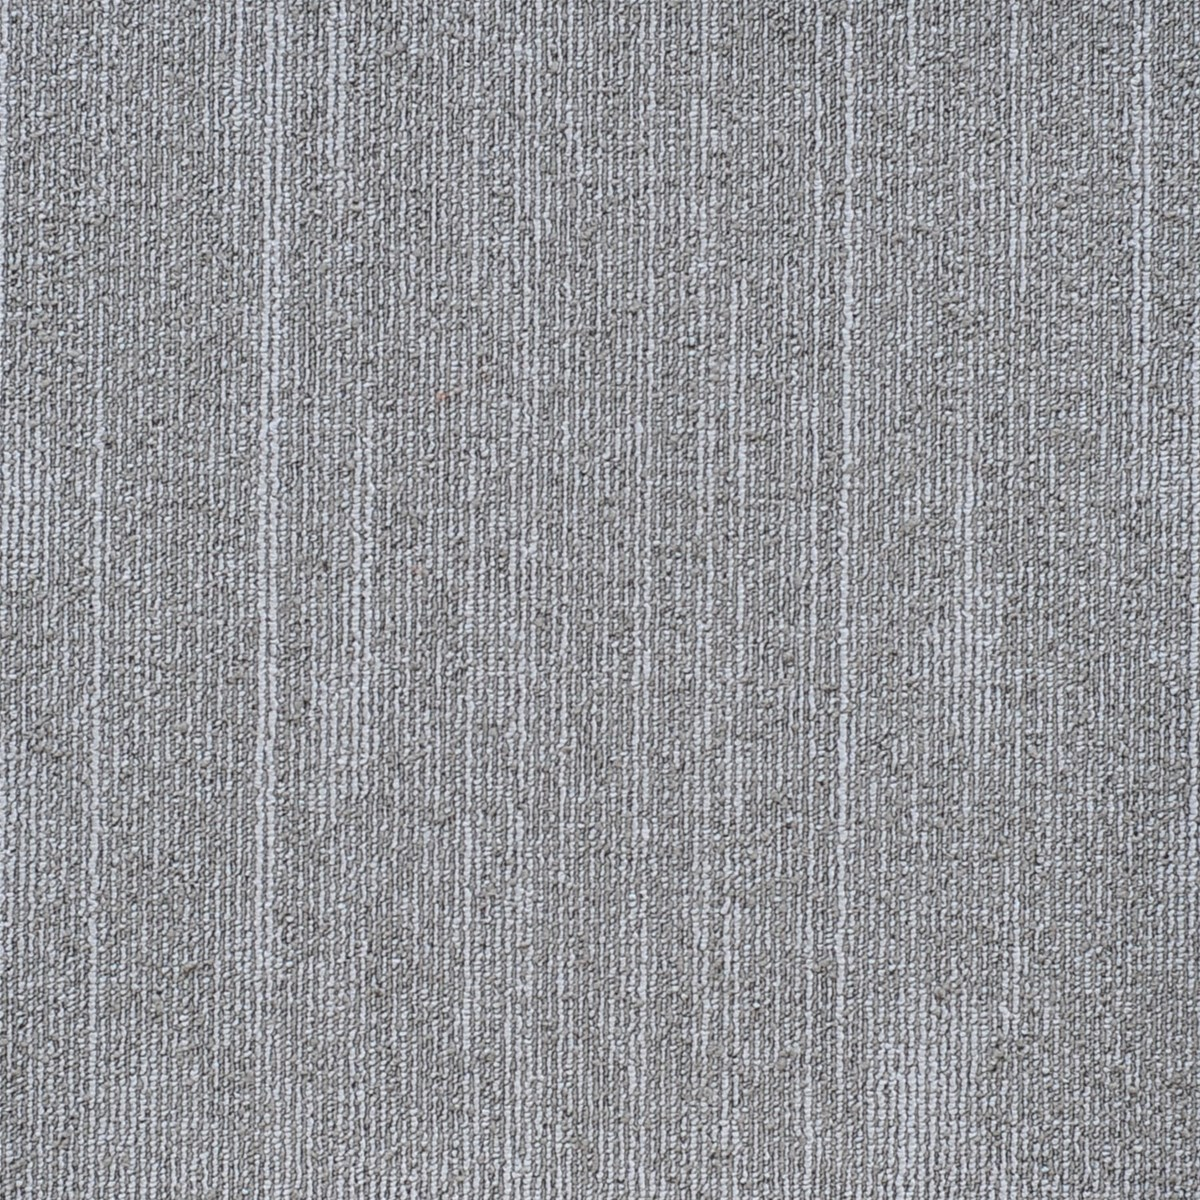 Pp Carpet Tile Hl Series Pvc Backing From China Manufacturer Manufactory Factory And Supplier On Ecvv Com